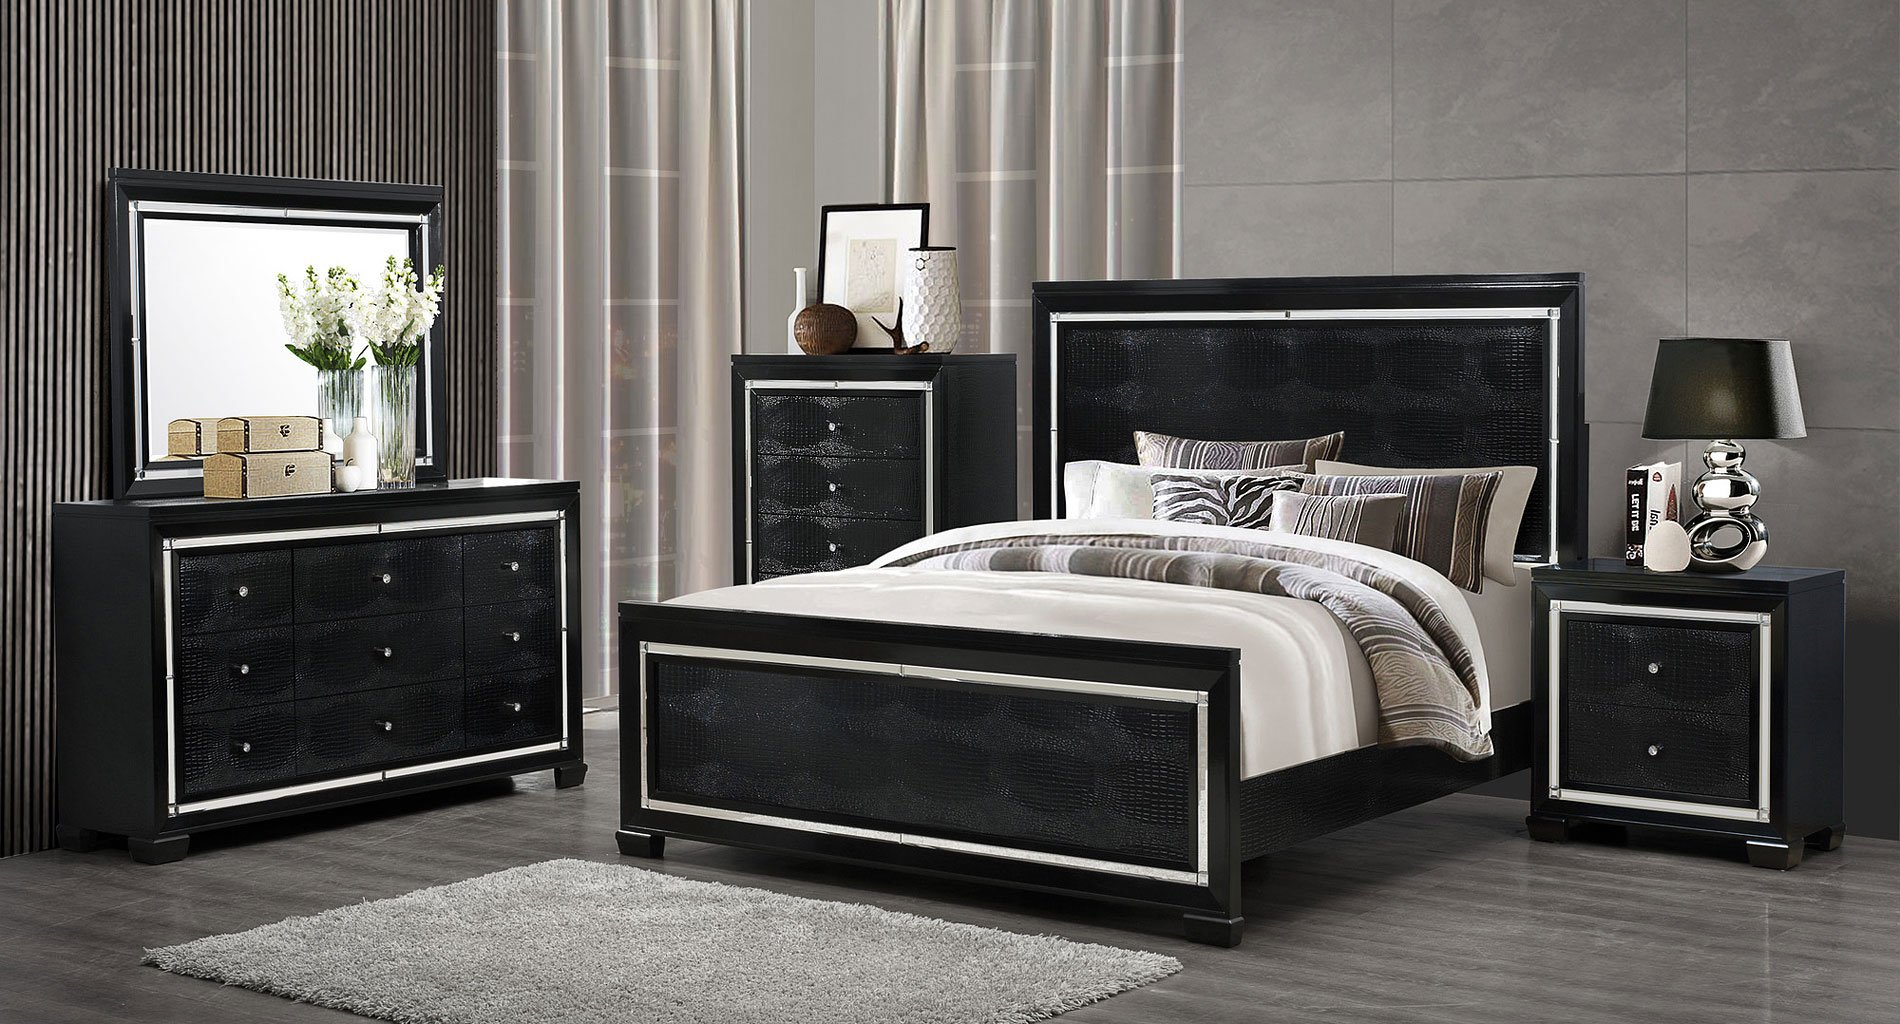 Galaxy Panel Bedroom Set Bedroom Sets Bedroom Furniture Bedroom